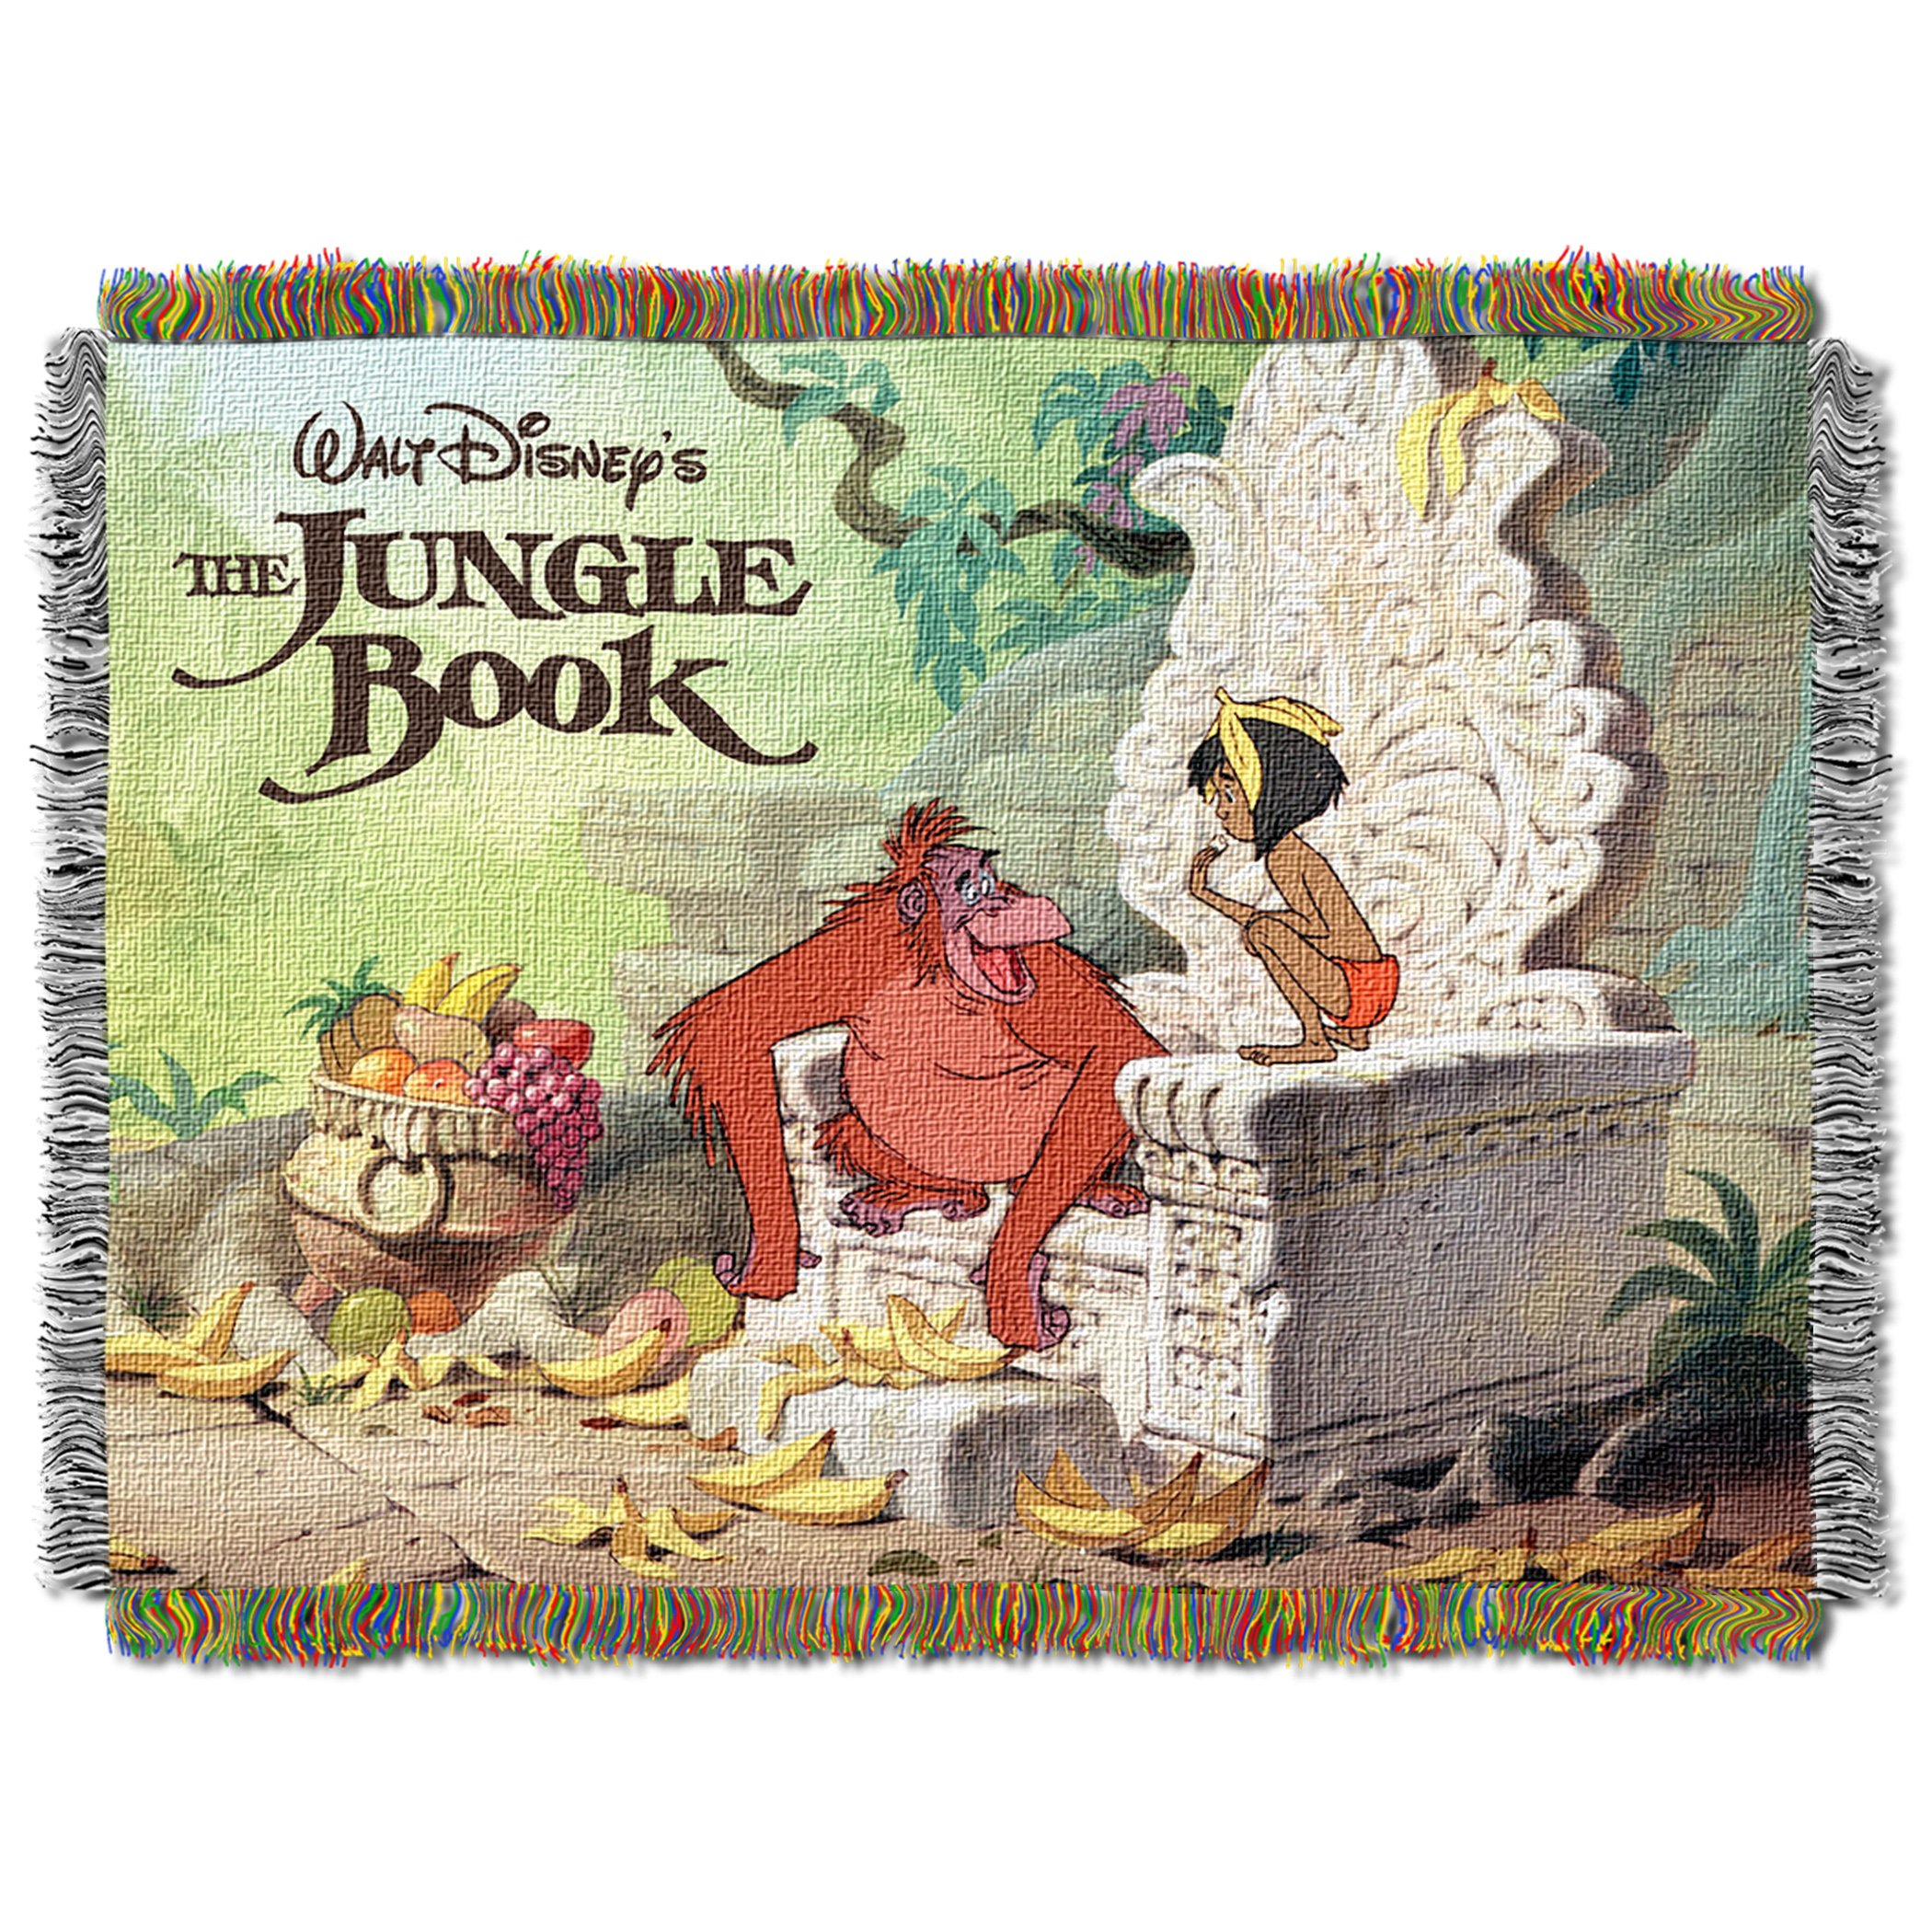 Disney's The Jungle Book, ''King Louie'' Woven Tapestry Throw Blanket, 48'' x 60'', Multi Color by Disney